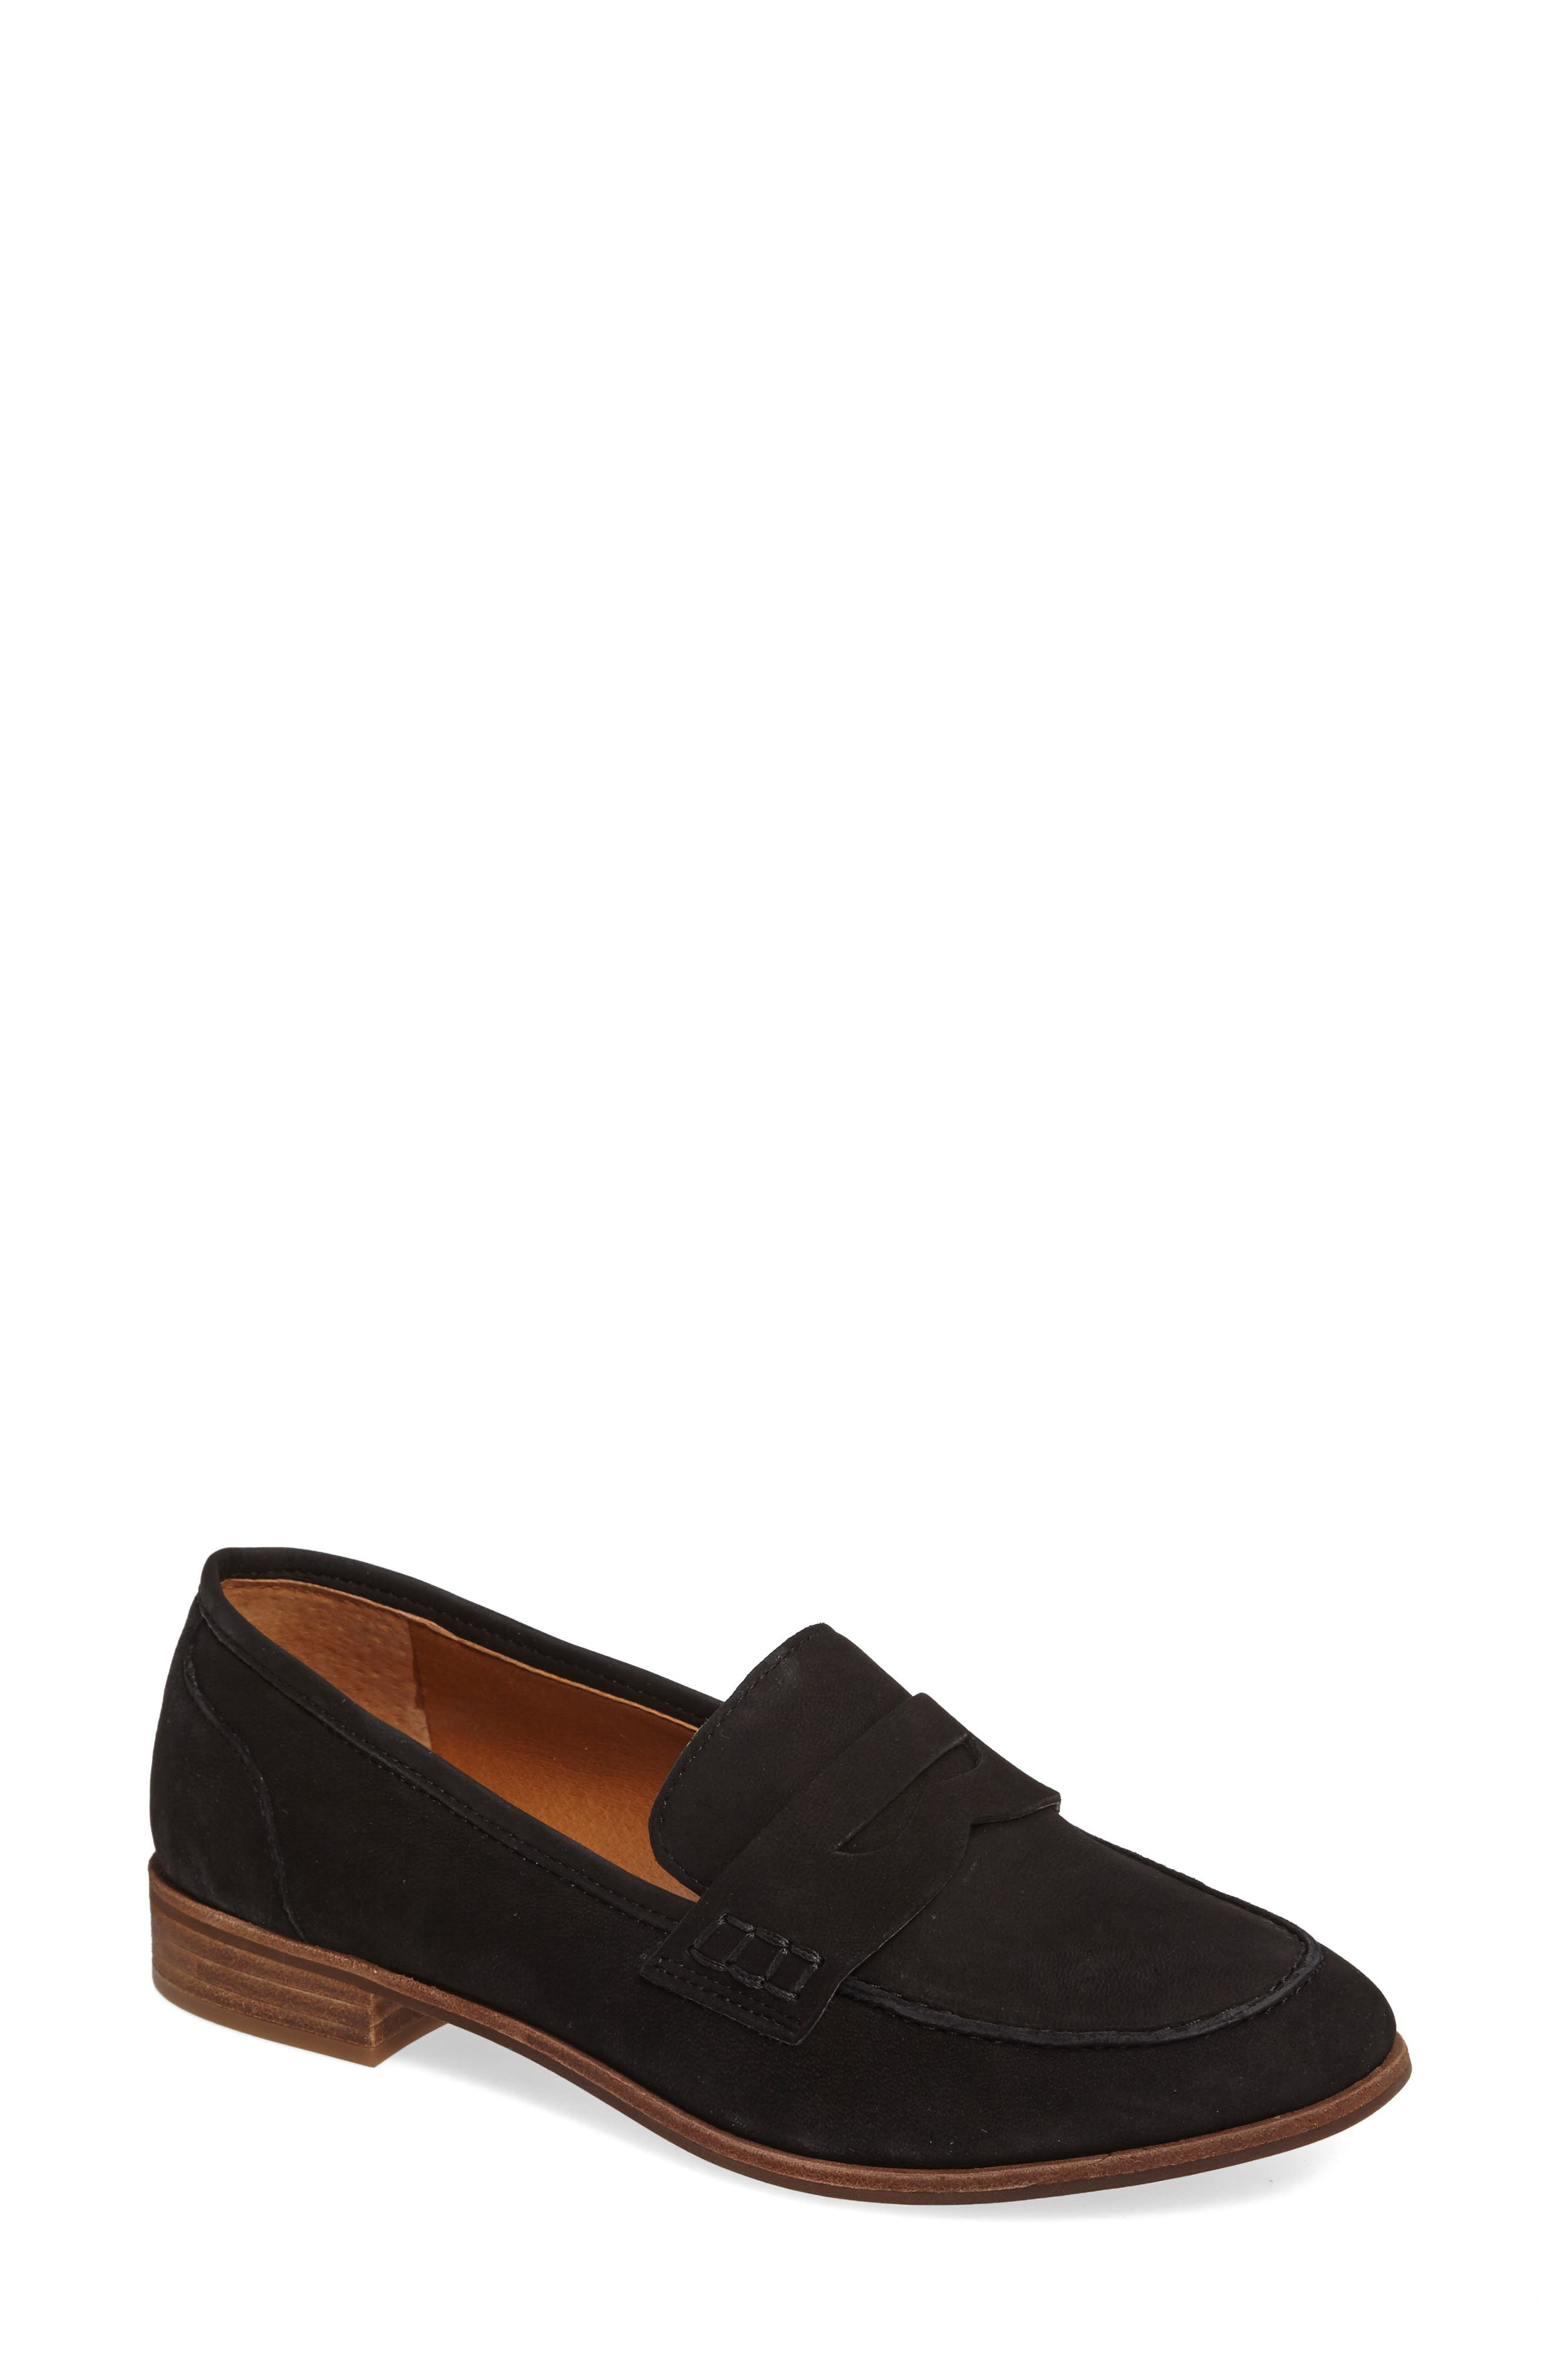 'Jolette' Penny Loafer,                             Main thumbnail 11, color,